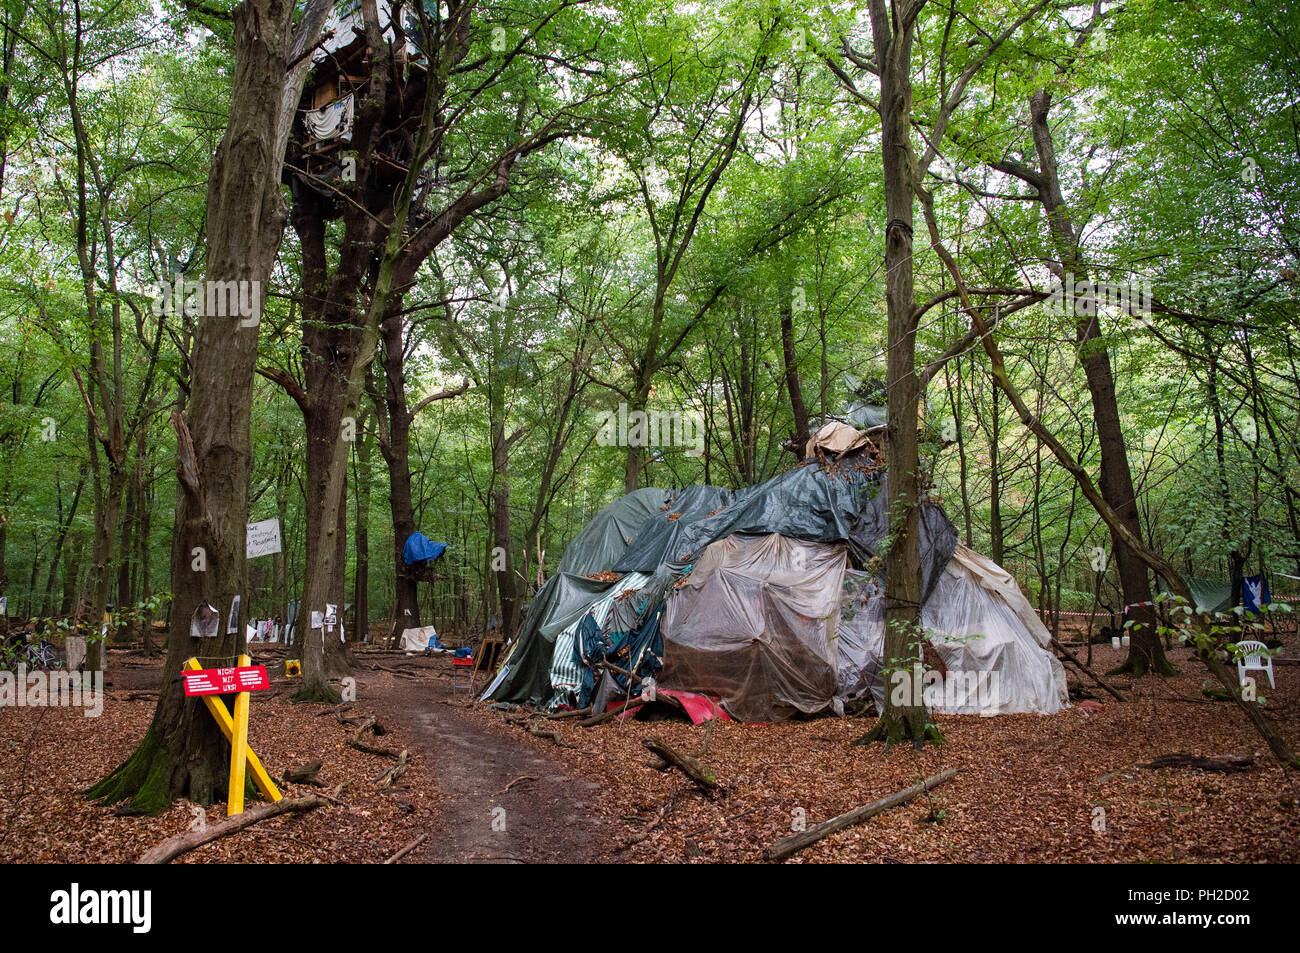 Germany, Morschenich. 29th Aug, 2018. Activists have built tree houses and huts in the Hambach Forest. The camp will demonstrate against the clearing of the Hambach forest for opencast lignite mining. North Rhine-Westphalia's Prime Minister Laschet (CDU) will be asking the press questions on current political issues on 30.09.2018. In the centre is probably the heated location in the Hambach Forest. Credit: Christophe Gateau/dpa/Alamy Live News - Stock Image